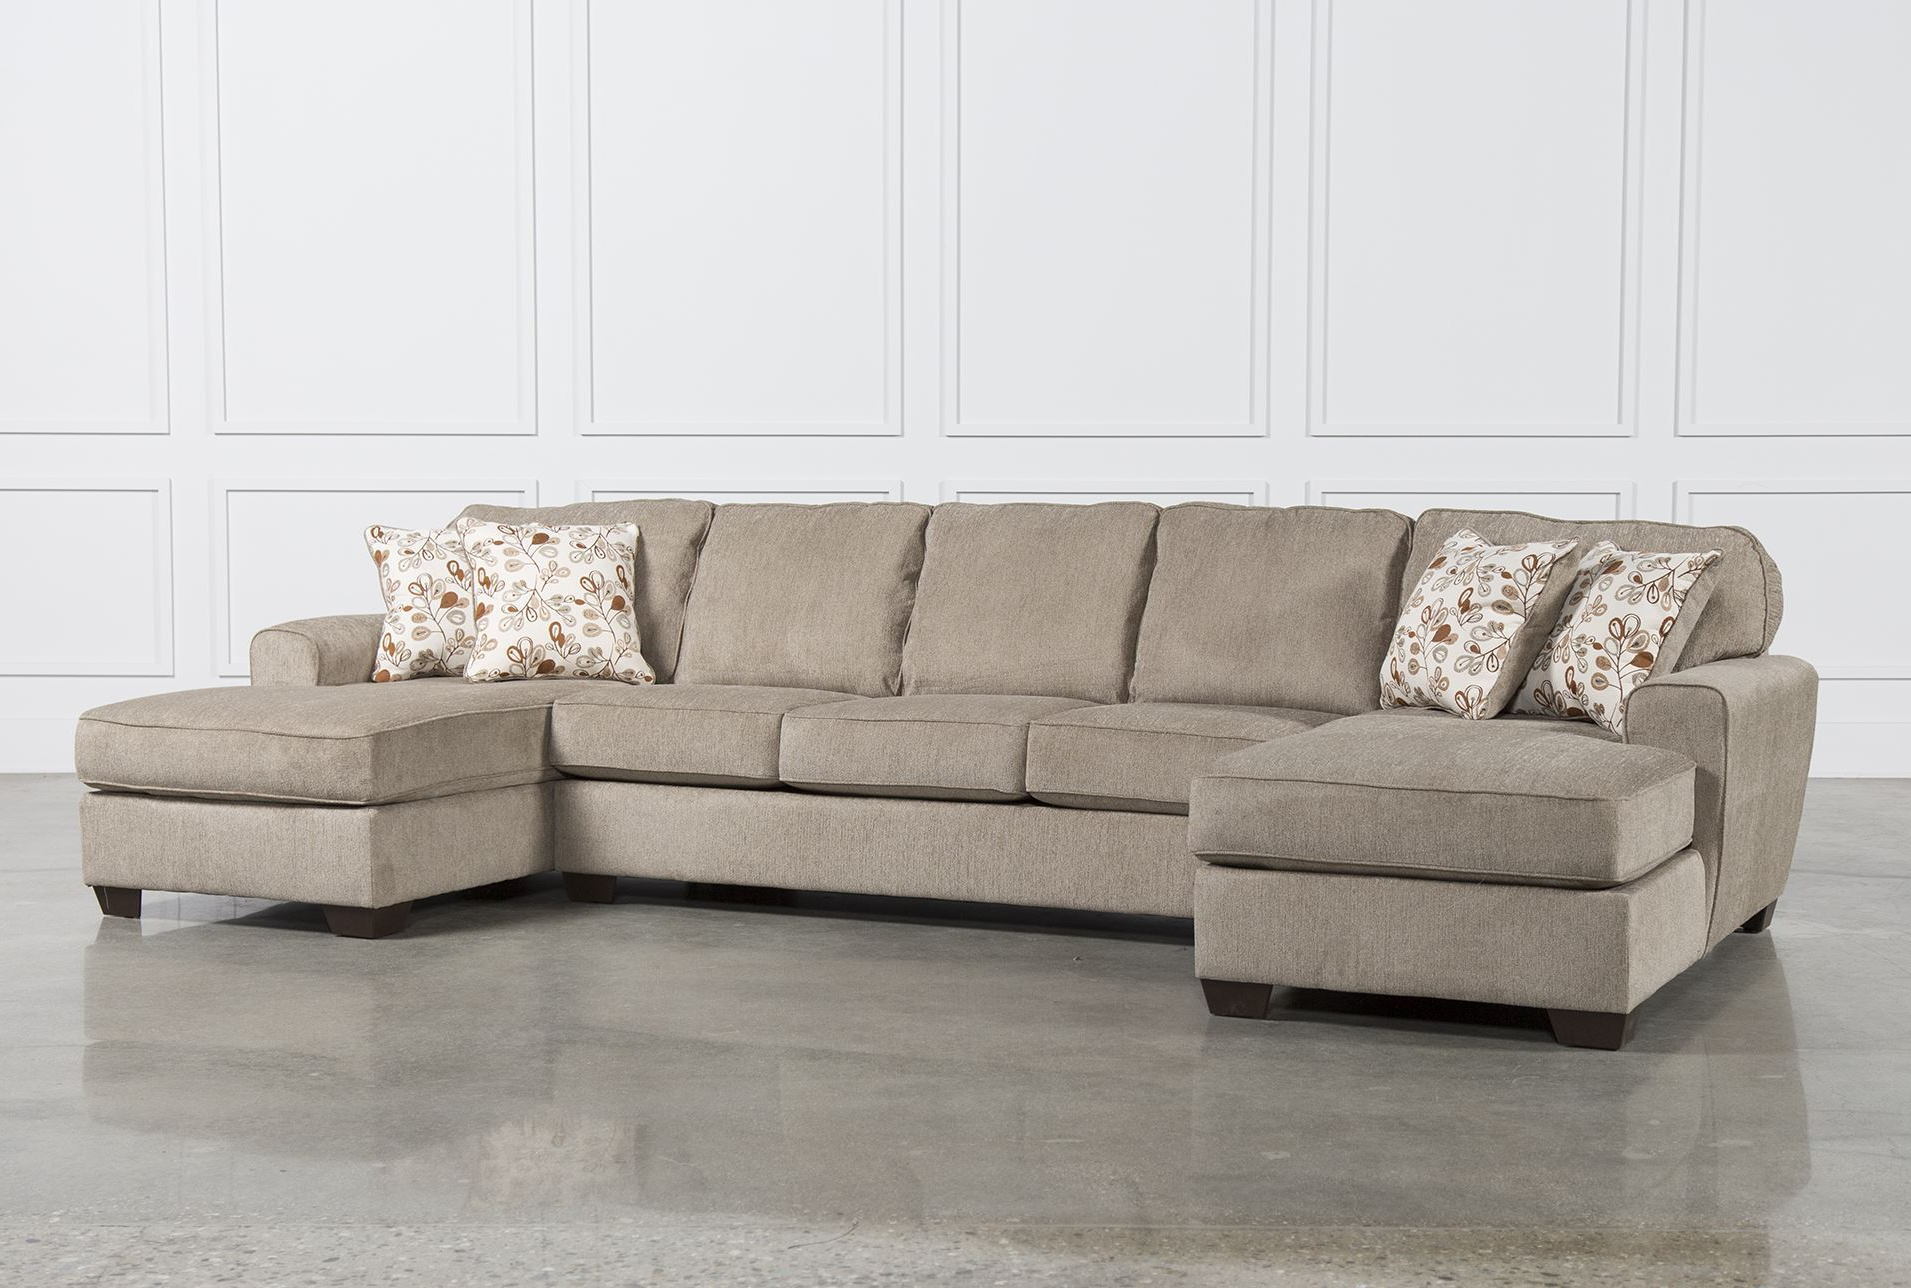 Living Spaces Small Sectional Sofas – Sofa Design Ideas Throughout 2019 Avery 2 Piece Sectionals With Laf Armless Chaise (Gallery 12 of 20)